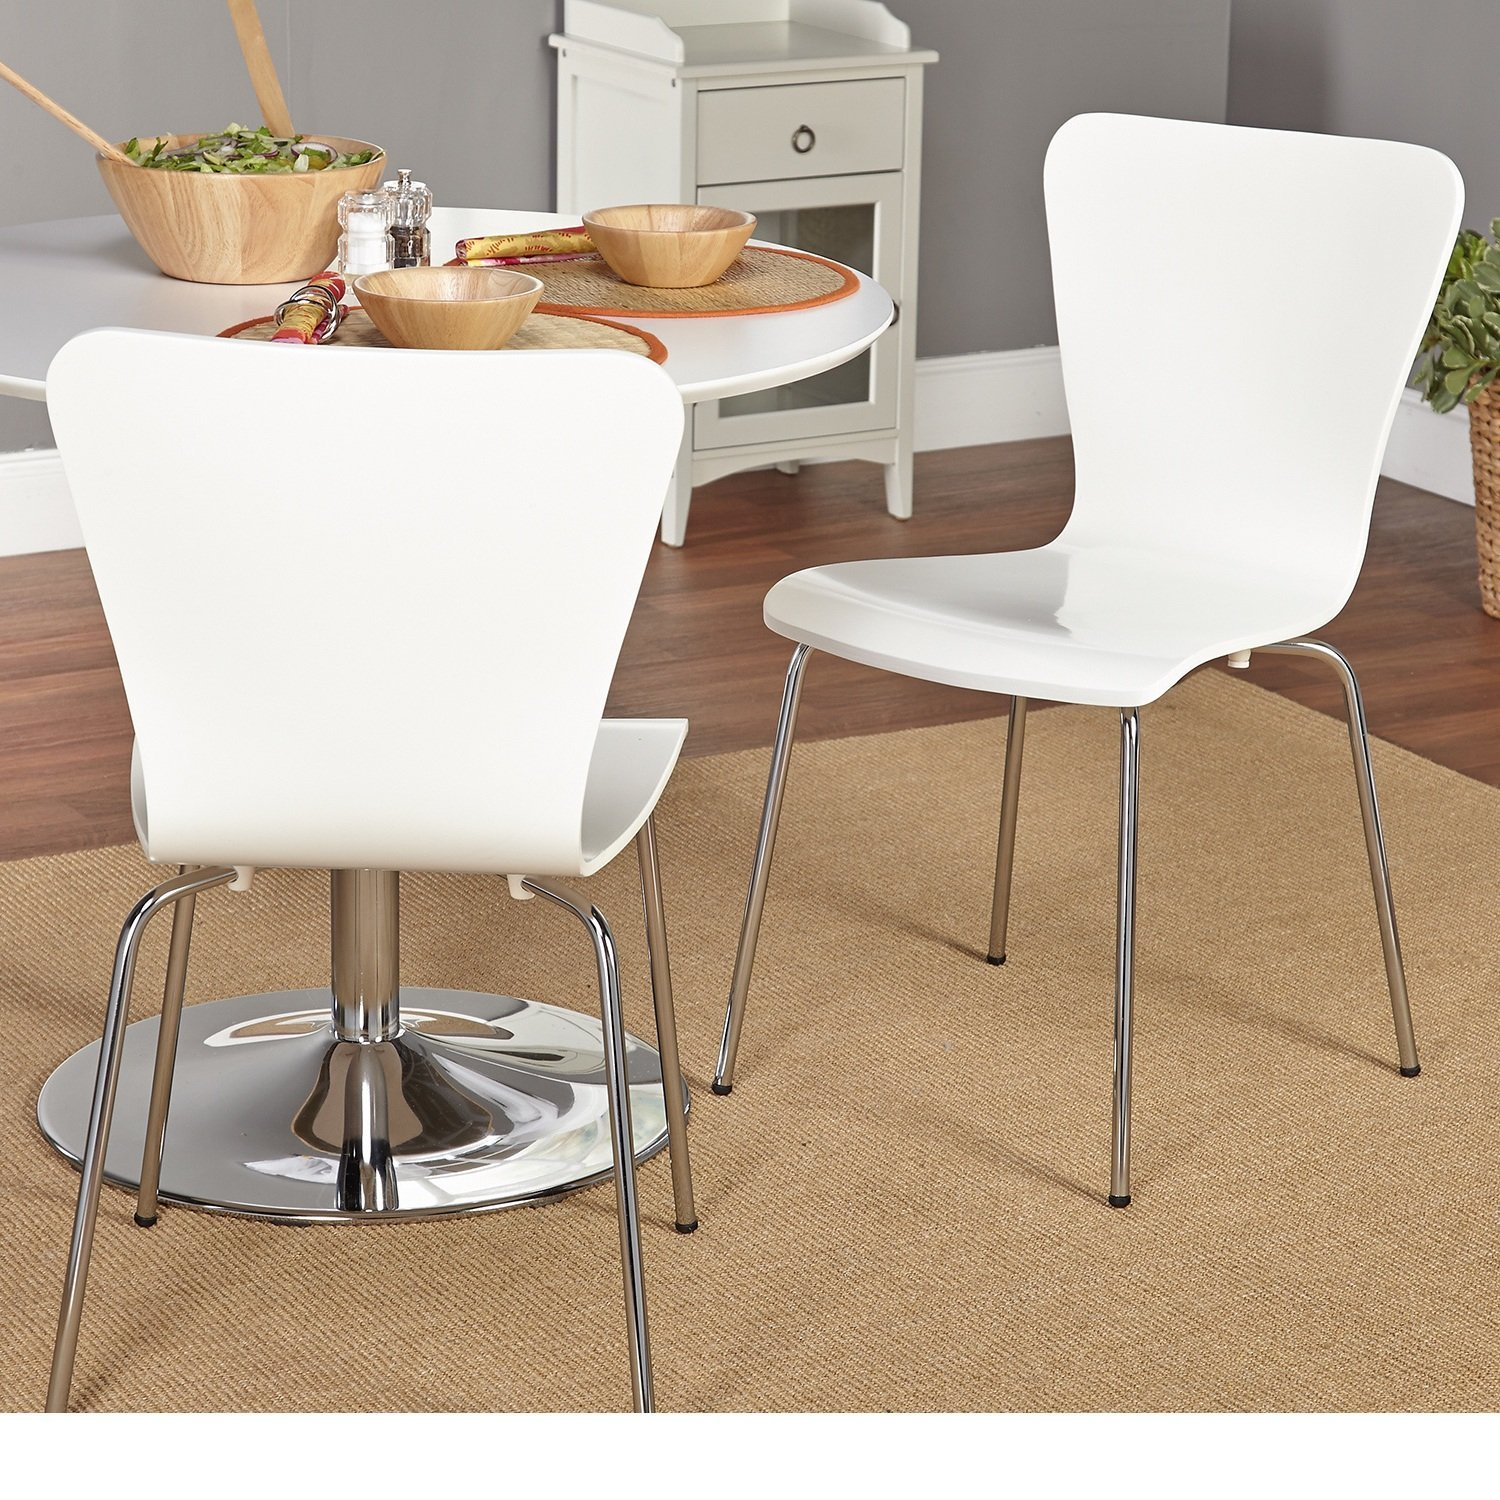 Buy 2 Piece White Dining Chairs Solid Pattern Wood Material Contemporary Modern Stackable Chair Retro Hour Glass Shape Curves Sturdy Chrome Plated Tube Metal Legs Fashionable Space In Cheap Price On Alibaba Com